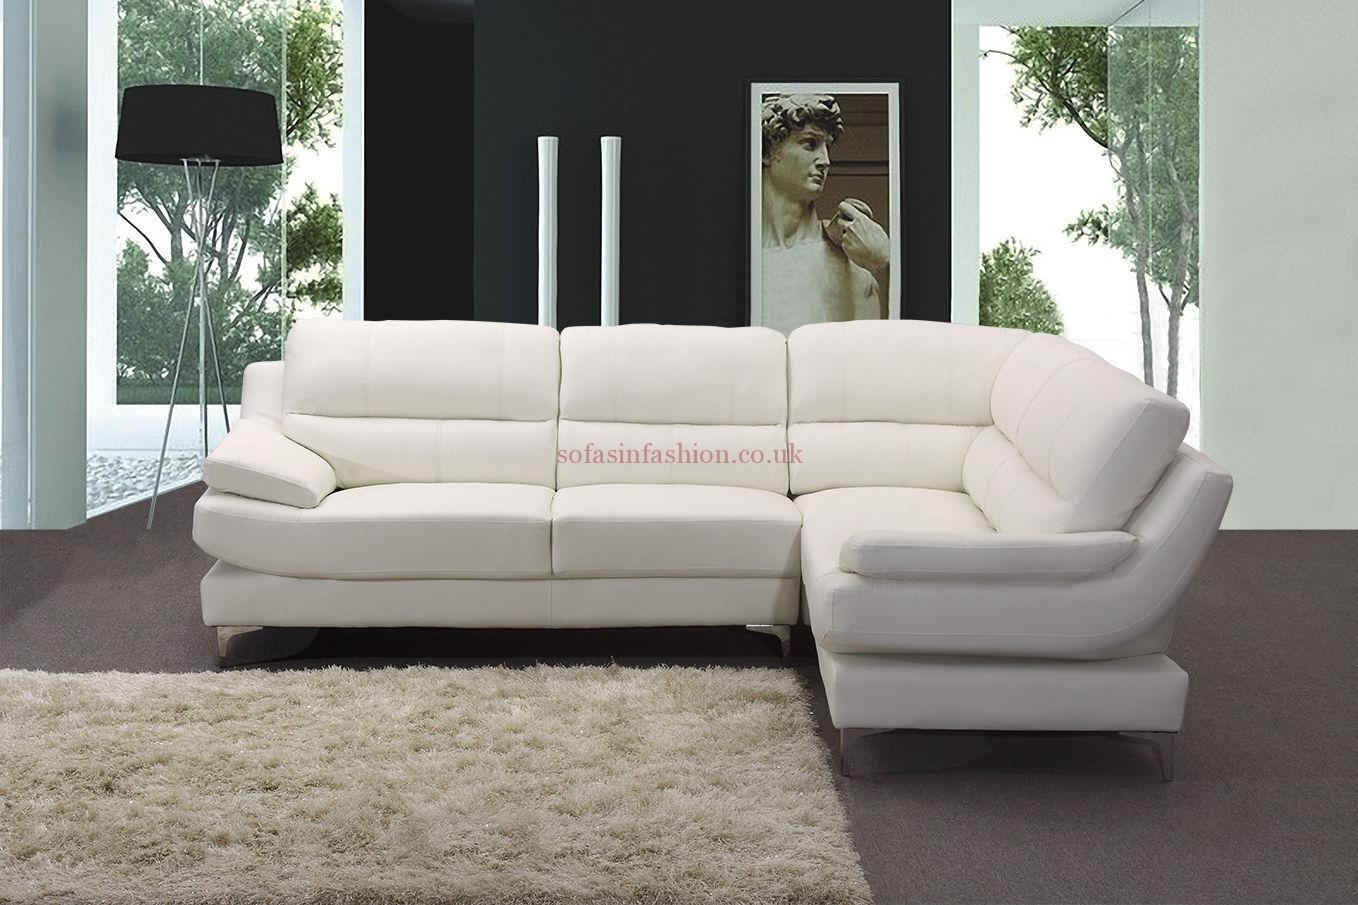 Corner Sofas For Sale Cheap | Tehranmix Decoration Within Cheap Corner Sofa (Image 10 of 20)